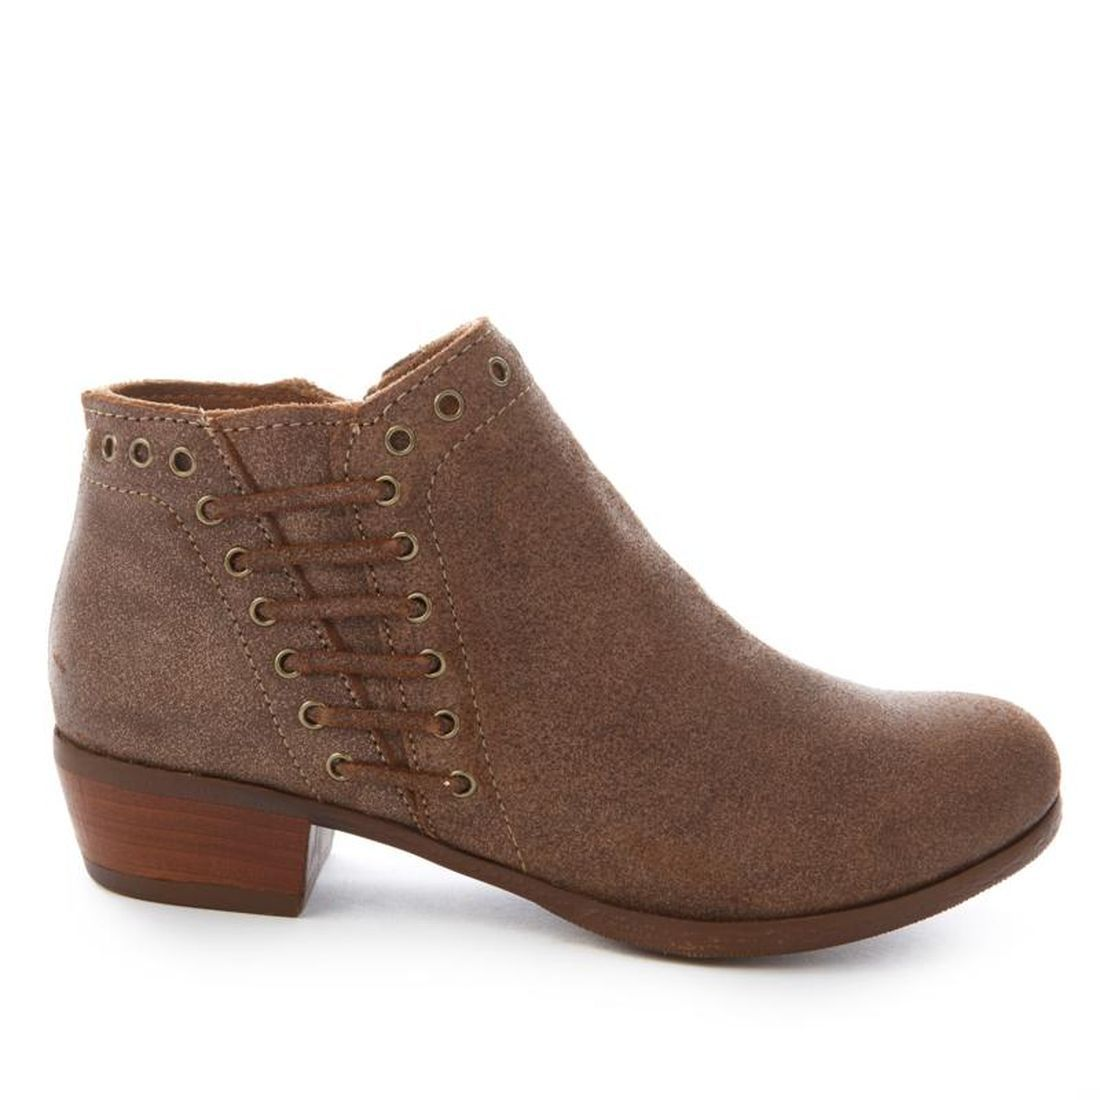 Minnetonka Brenna Vintage Leather Ankle Boot 570-137 by